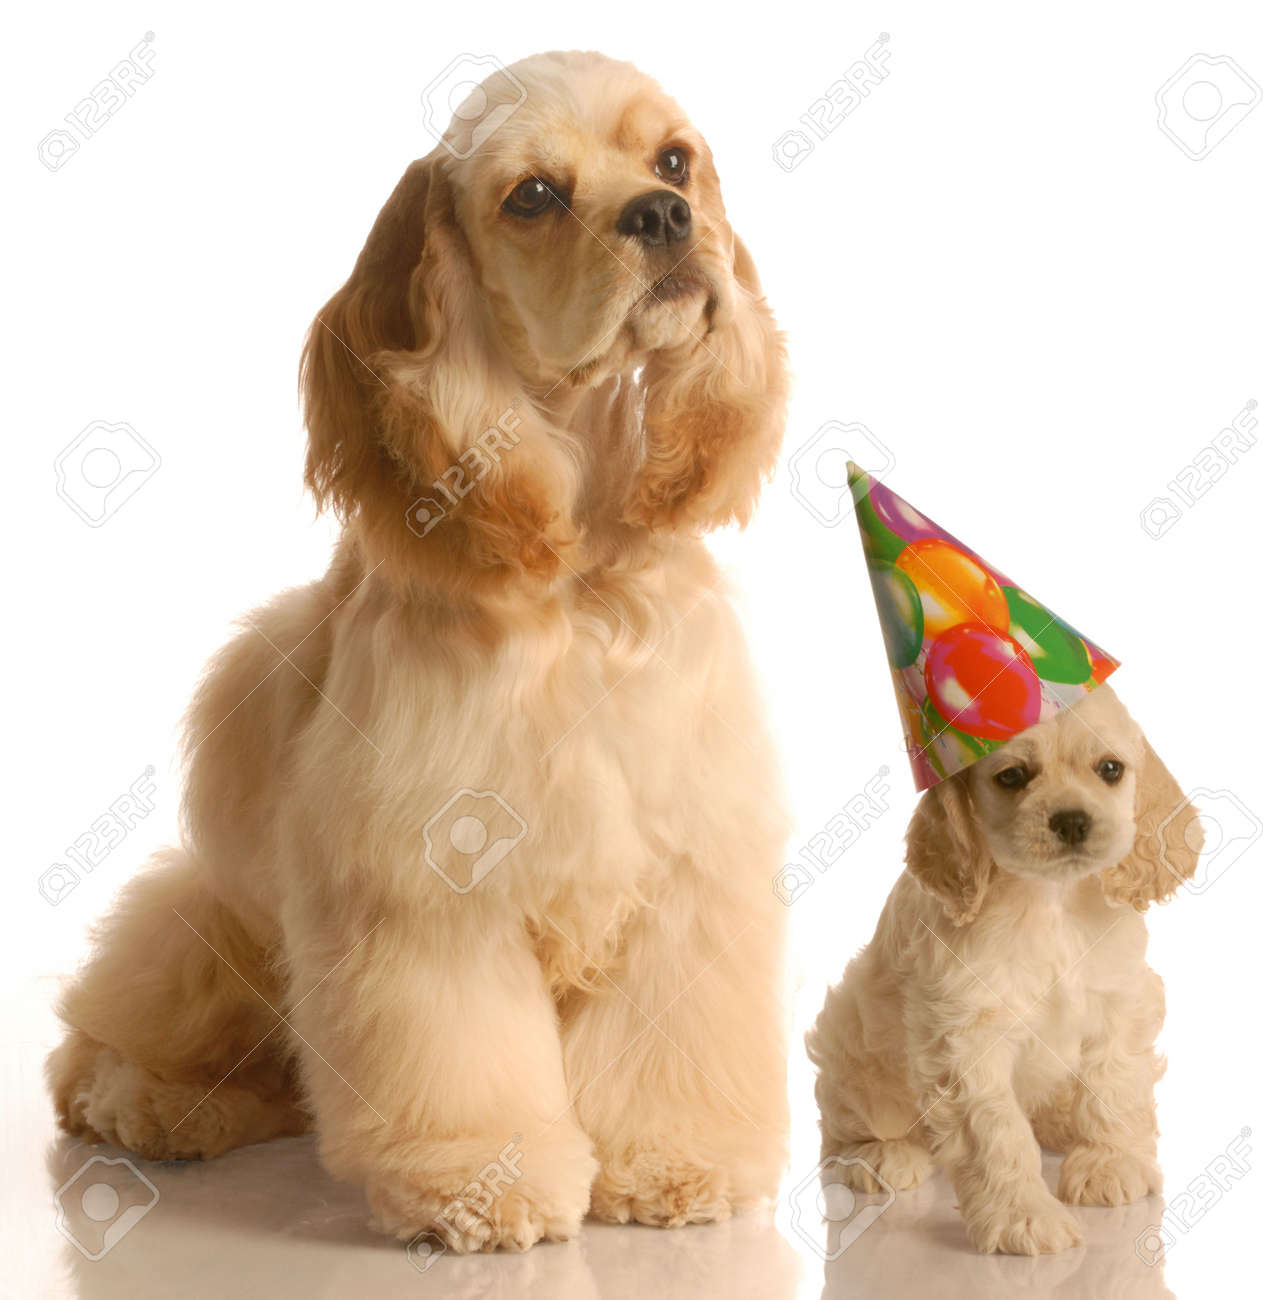 Concept Of Mother And Baby At Birthday Cocker Spaniel Puppy Stock Photo Picture And Royalty Free Image Image 4521343